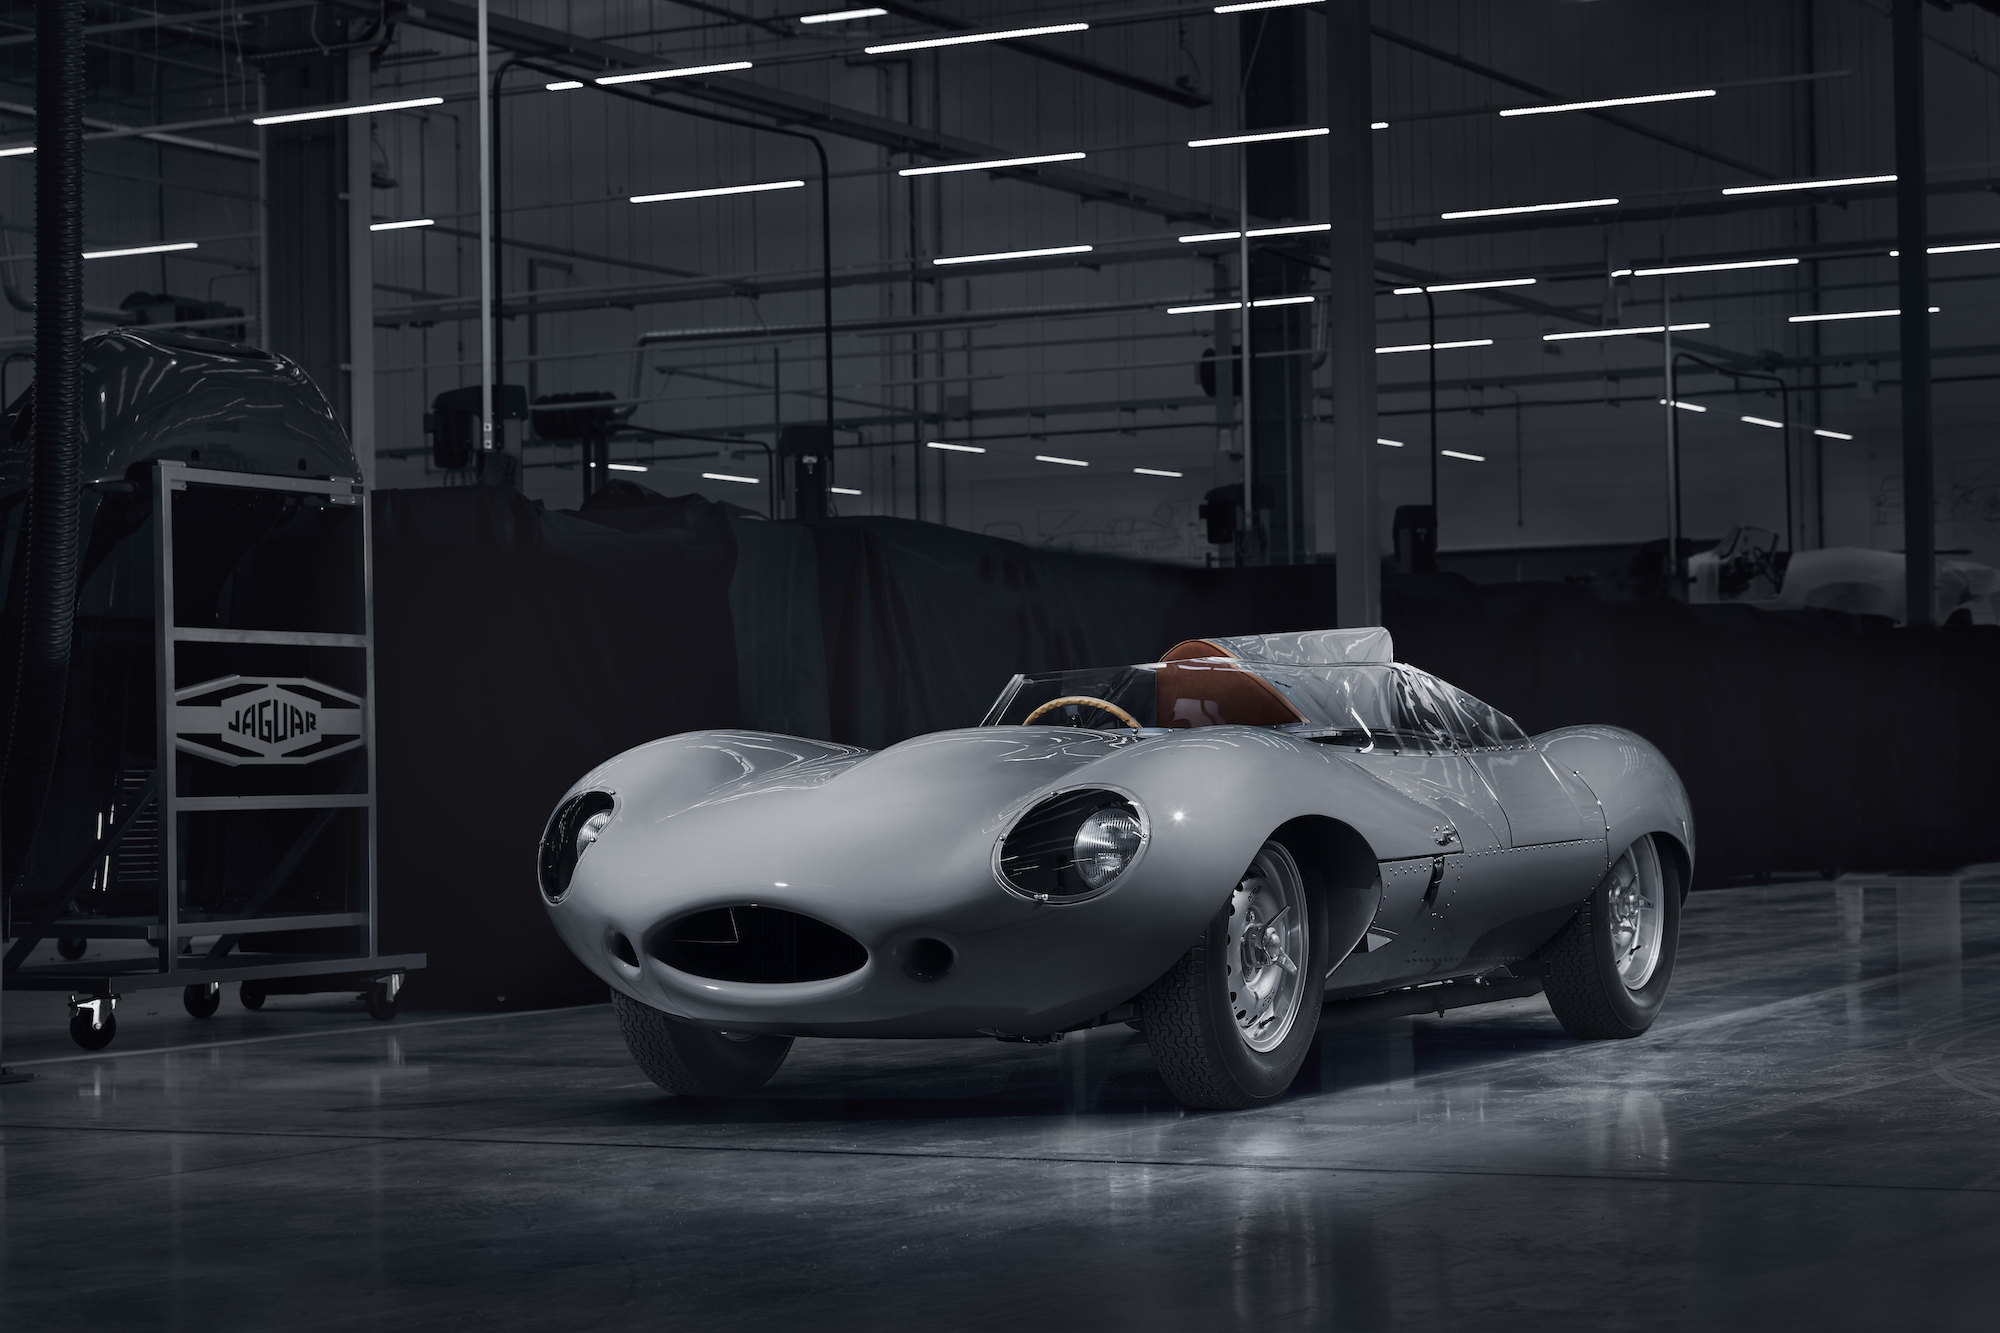 JLR Classic is Building Brand New Jaguar D-Type Continuation Cars